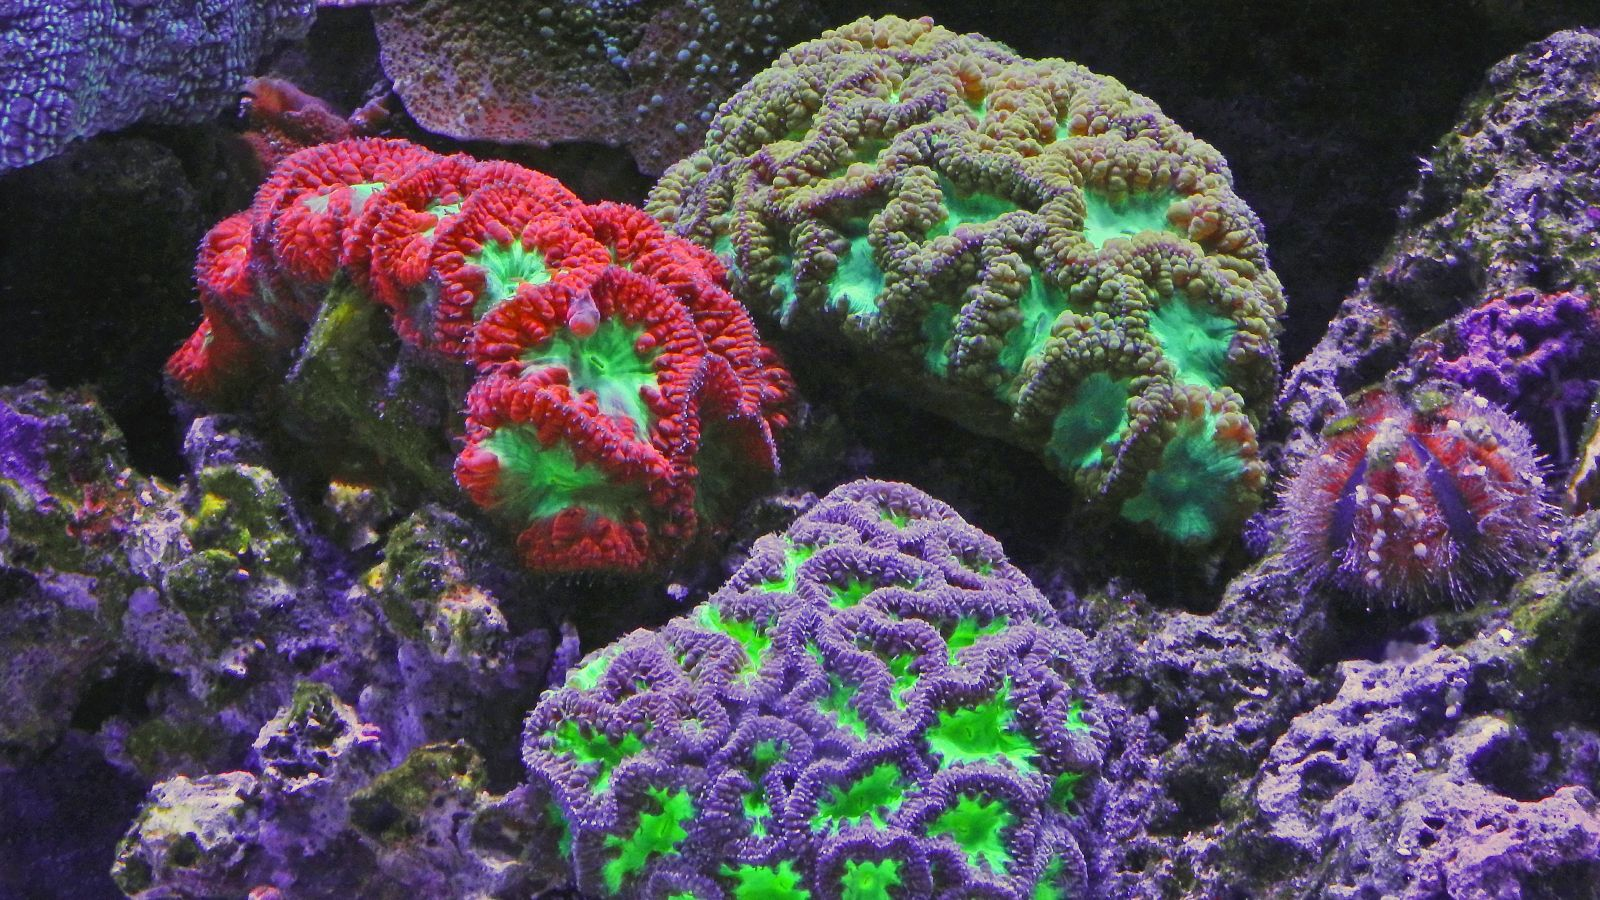 Short time to save reefs